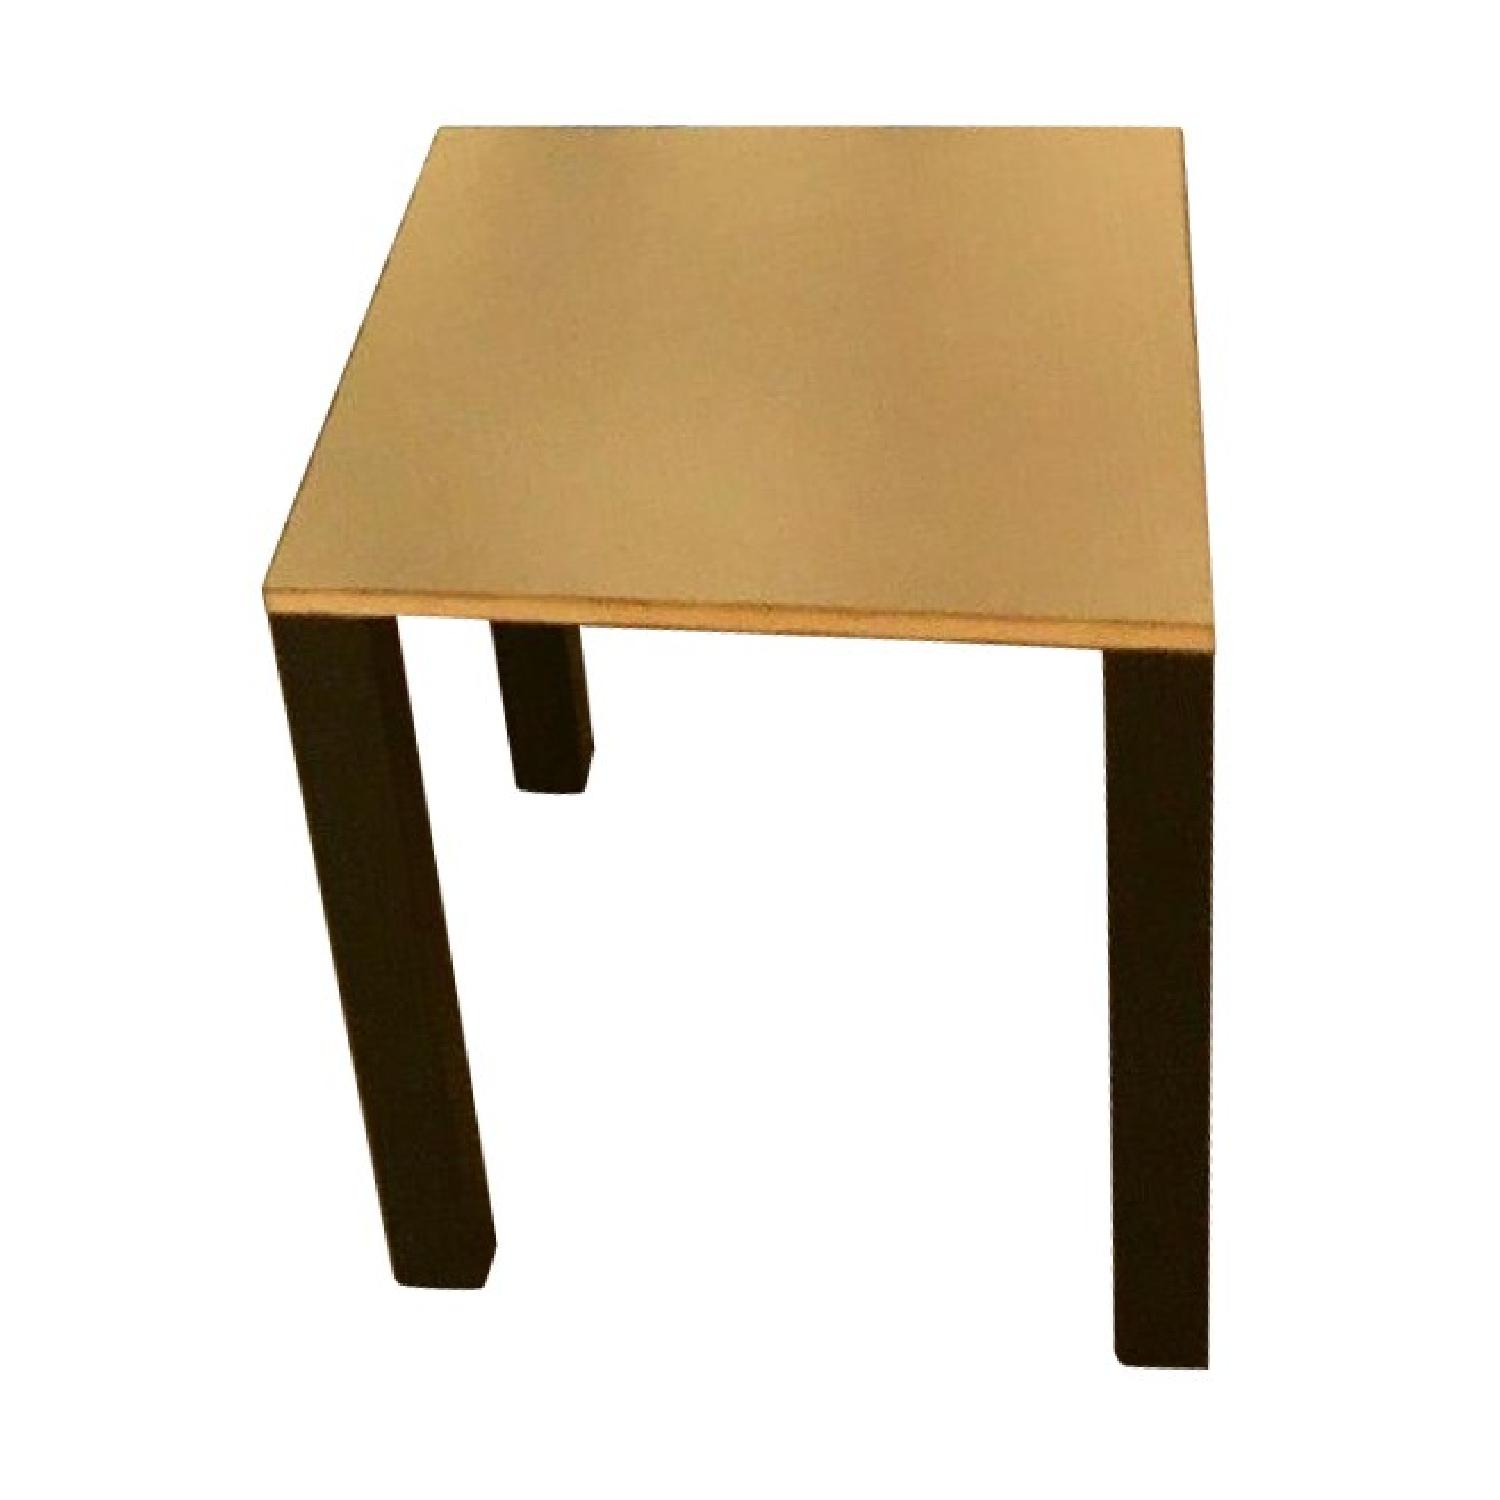 Common Room Custom Designed Square Cafe Table